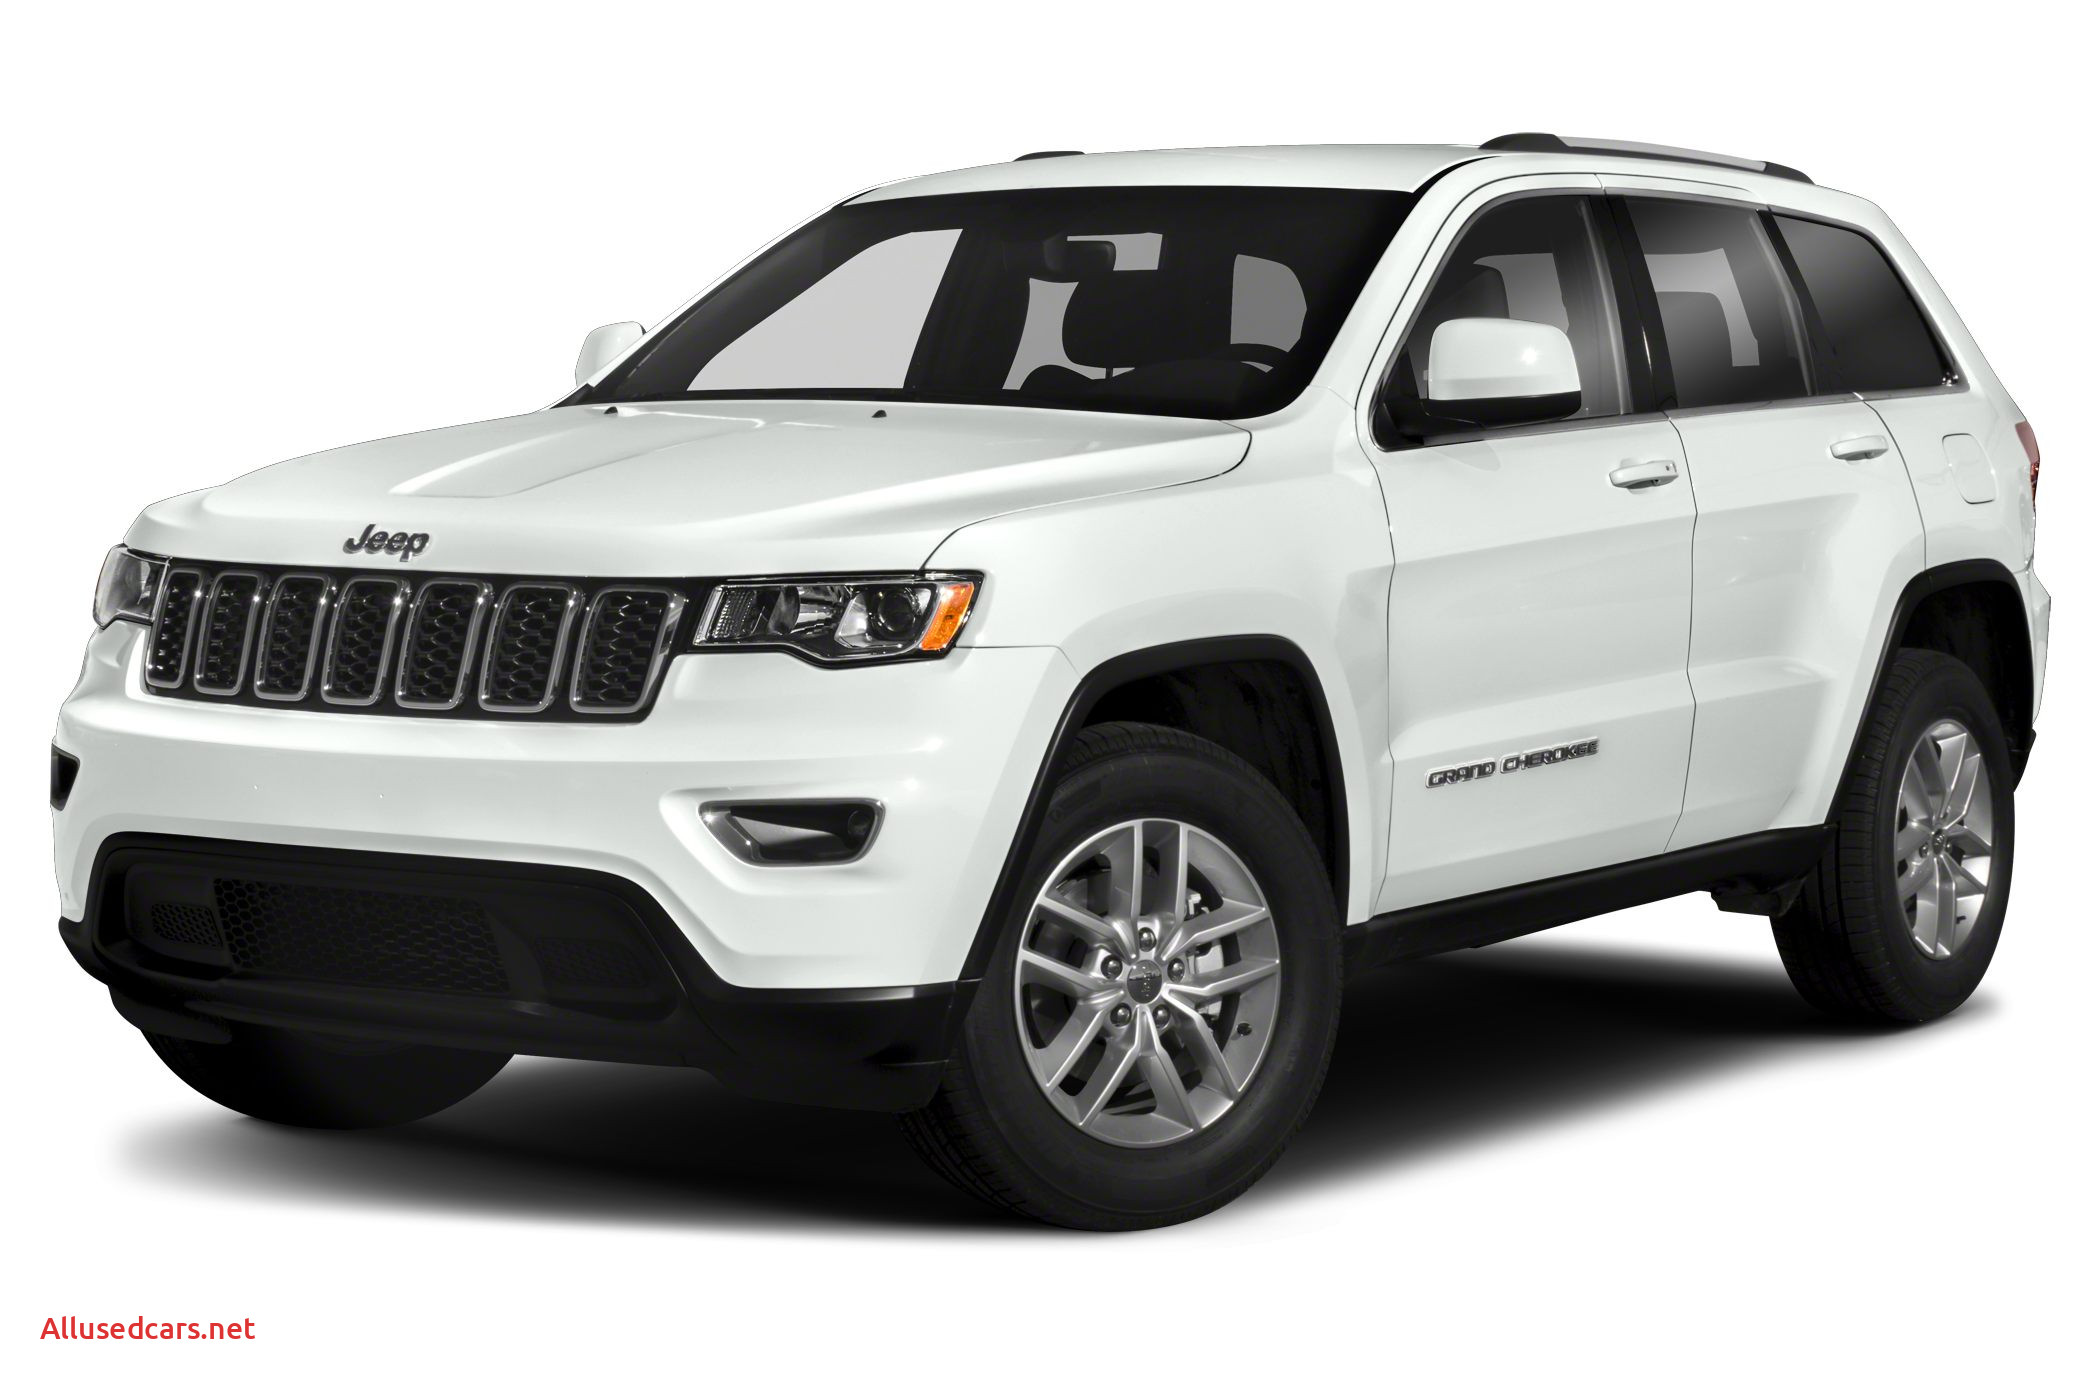 2010 Jeep Grand Cherokee Beautiful 2018 Jeep Grand Cherokee Specs and Prices